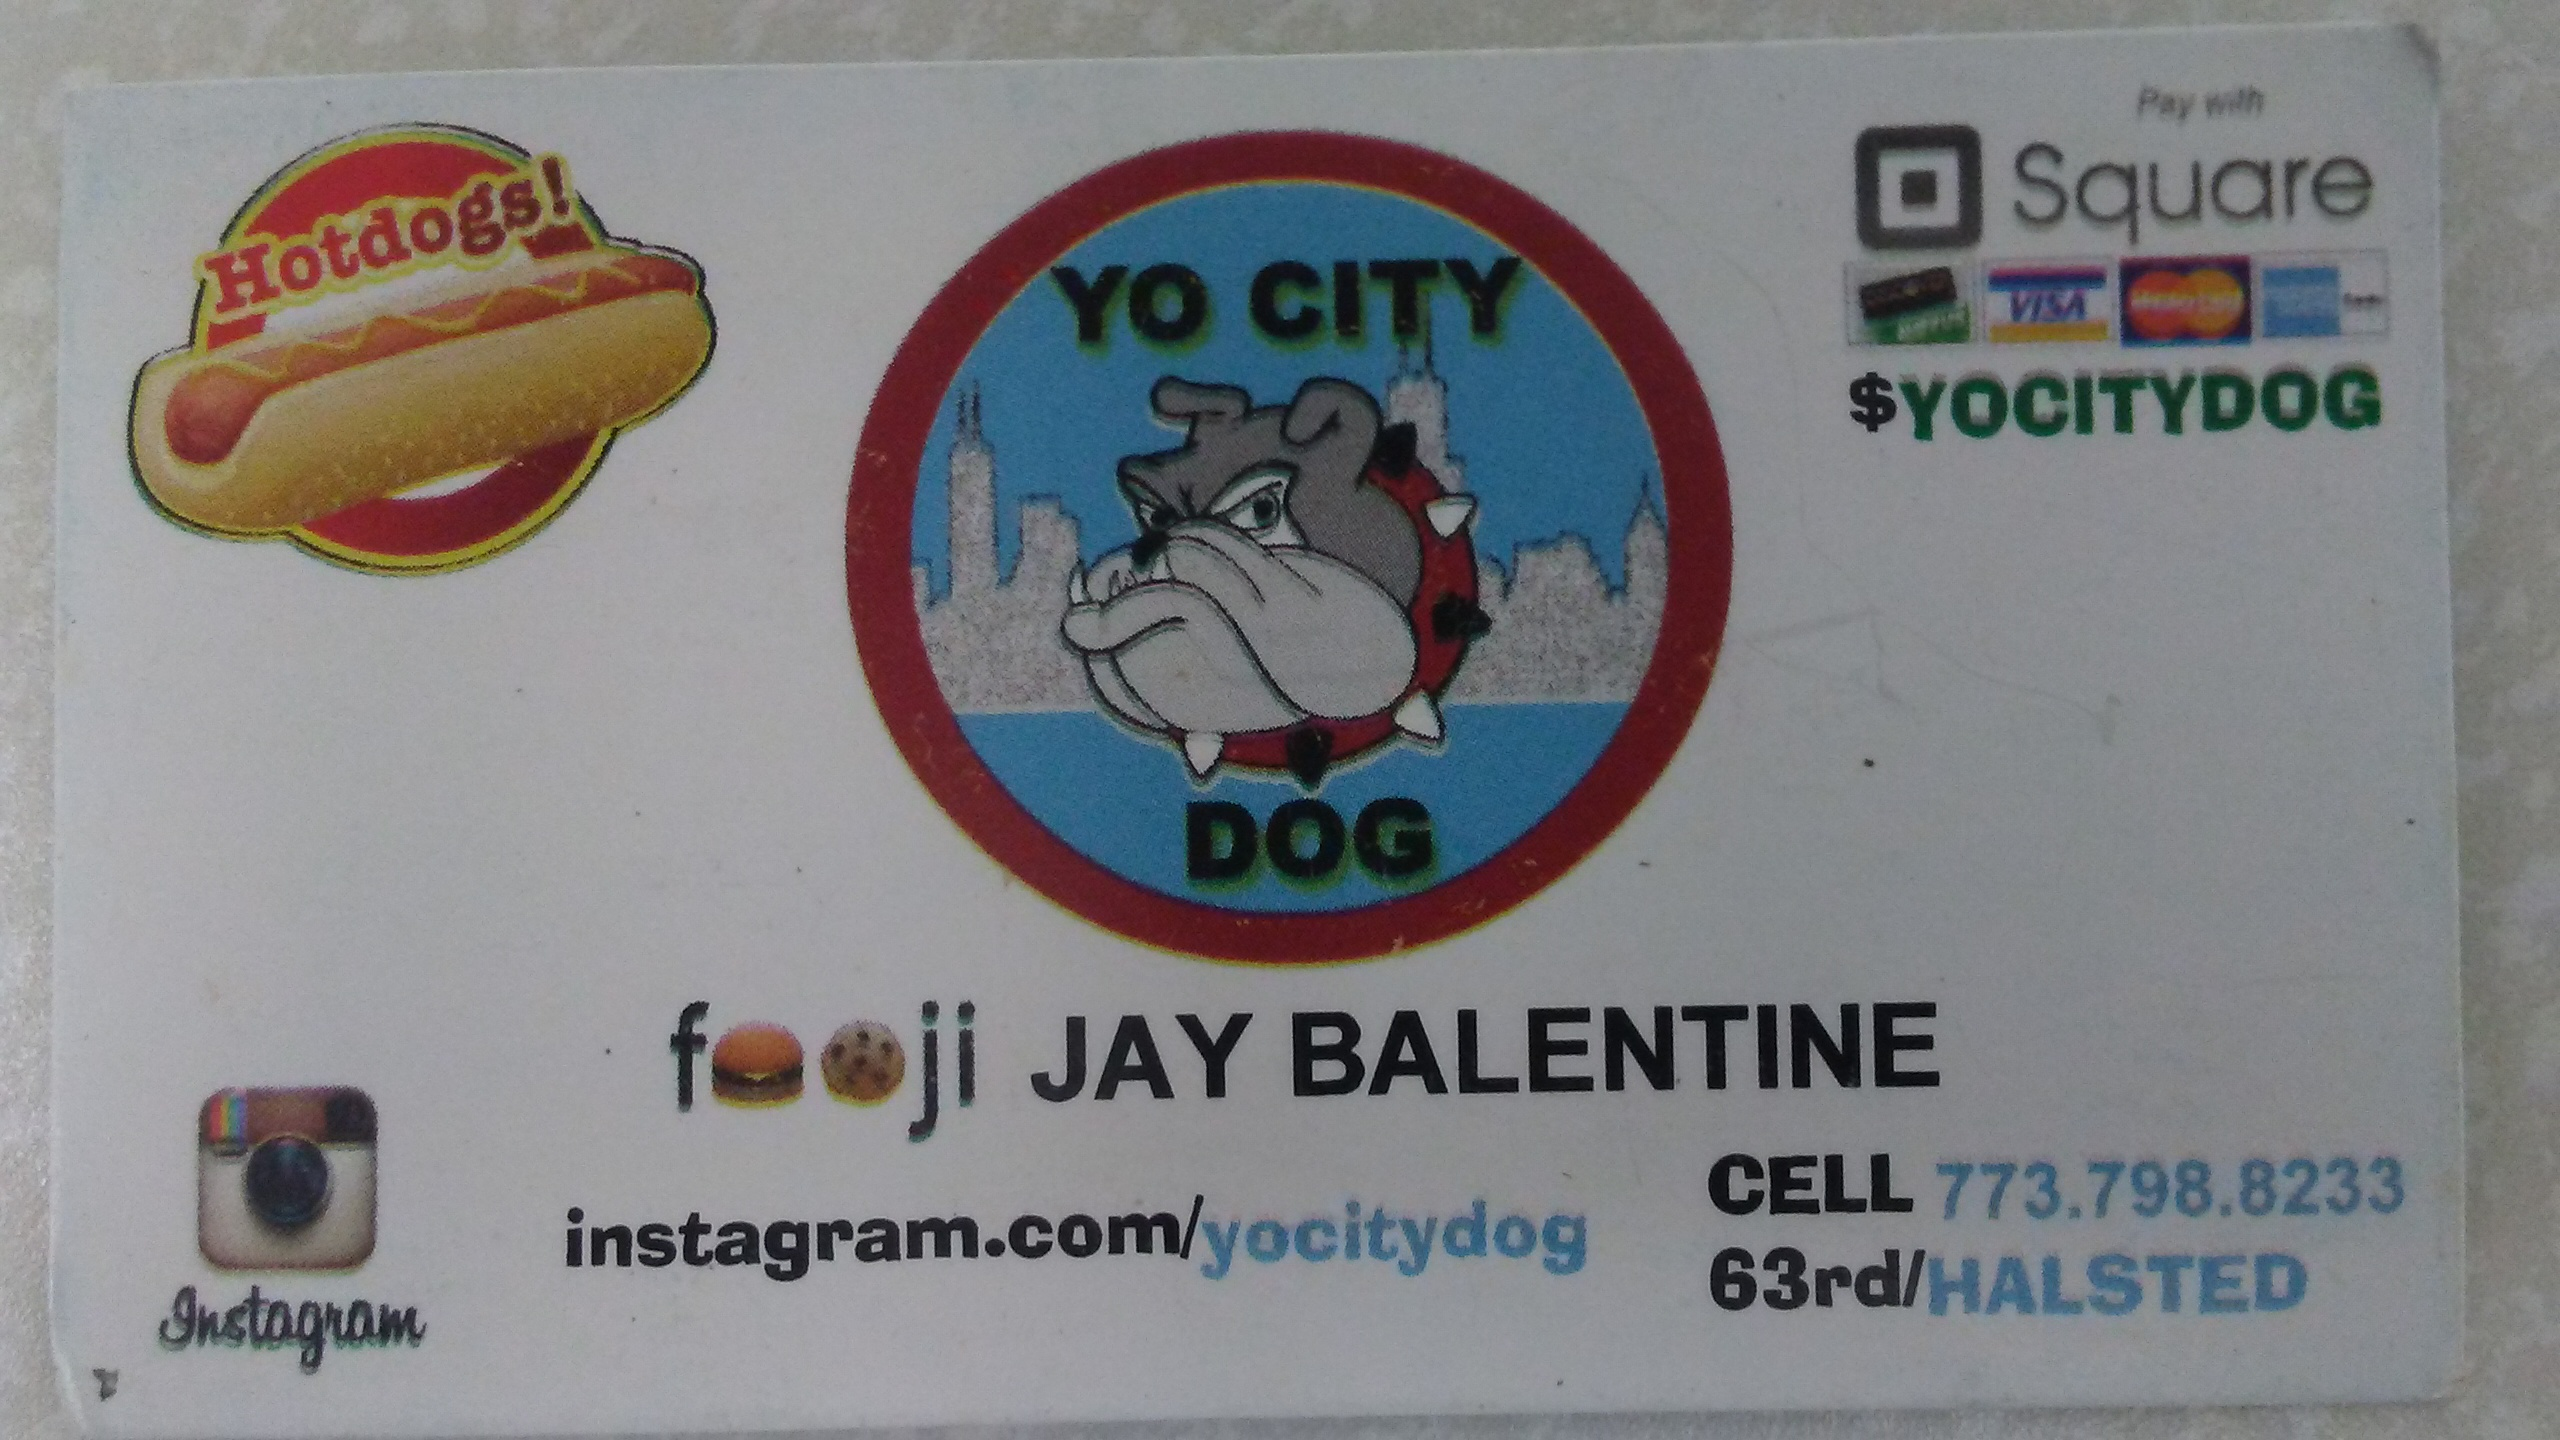 YO CITY DOG